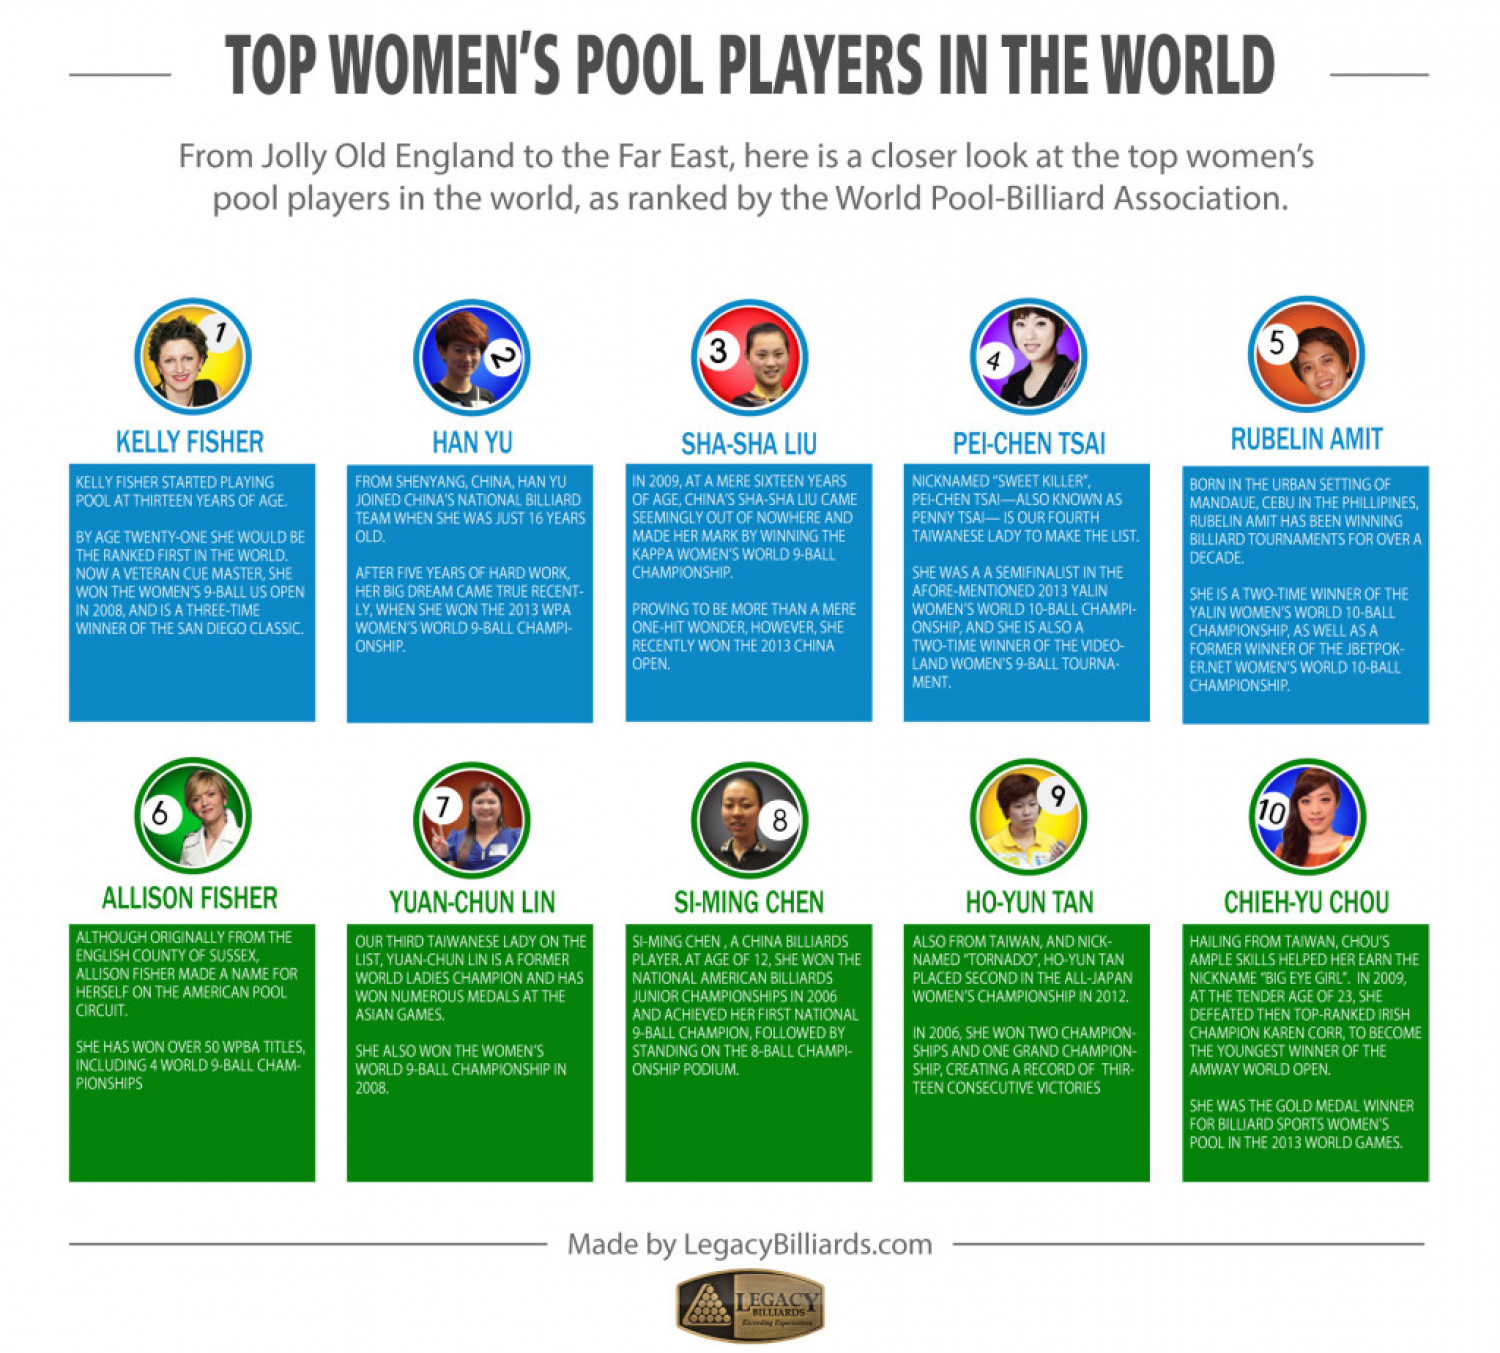 Top Women's Pool Players in the World Infographic